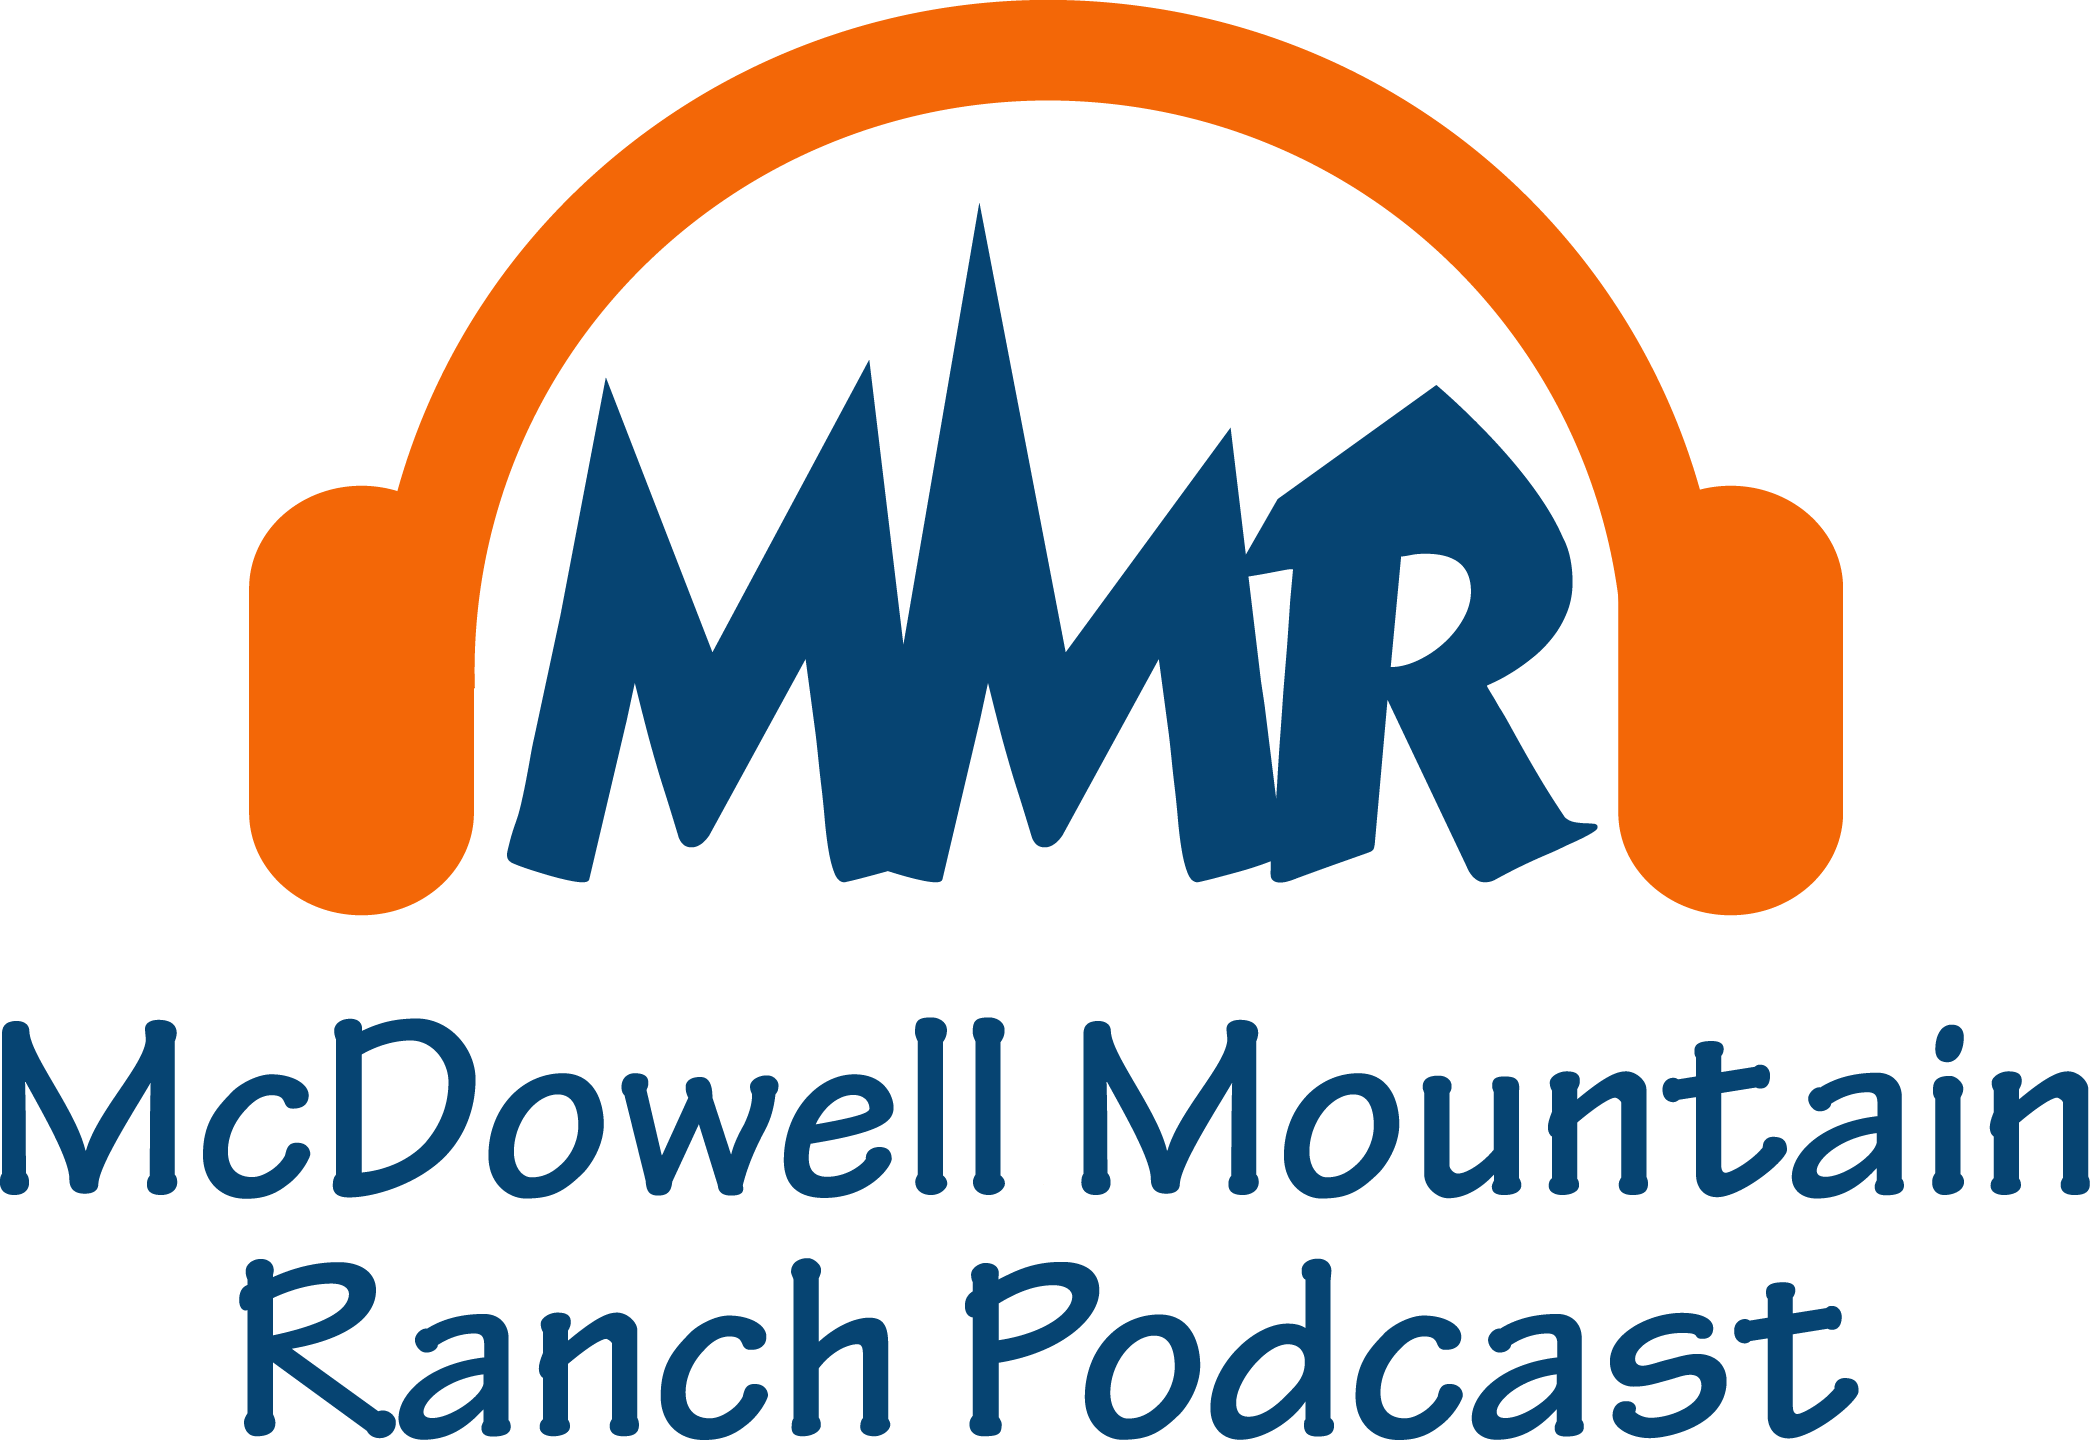 McDowell Mountain Ranch Podcast.png